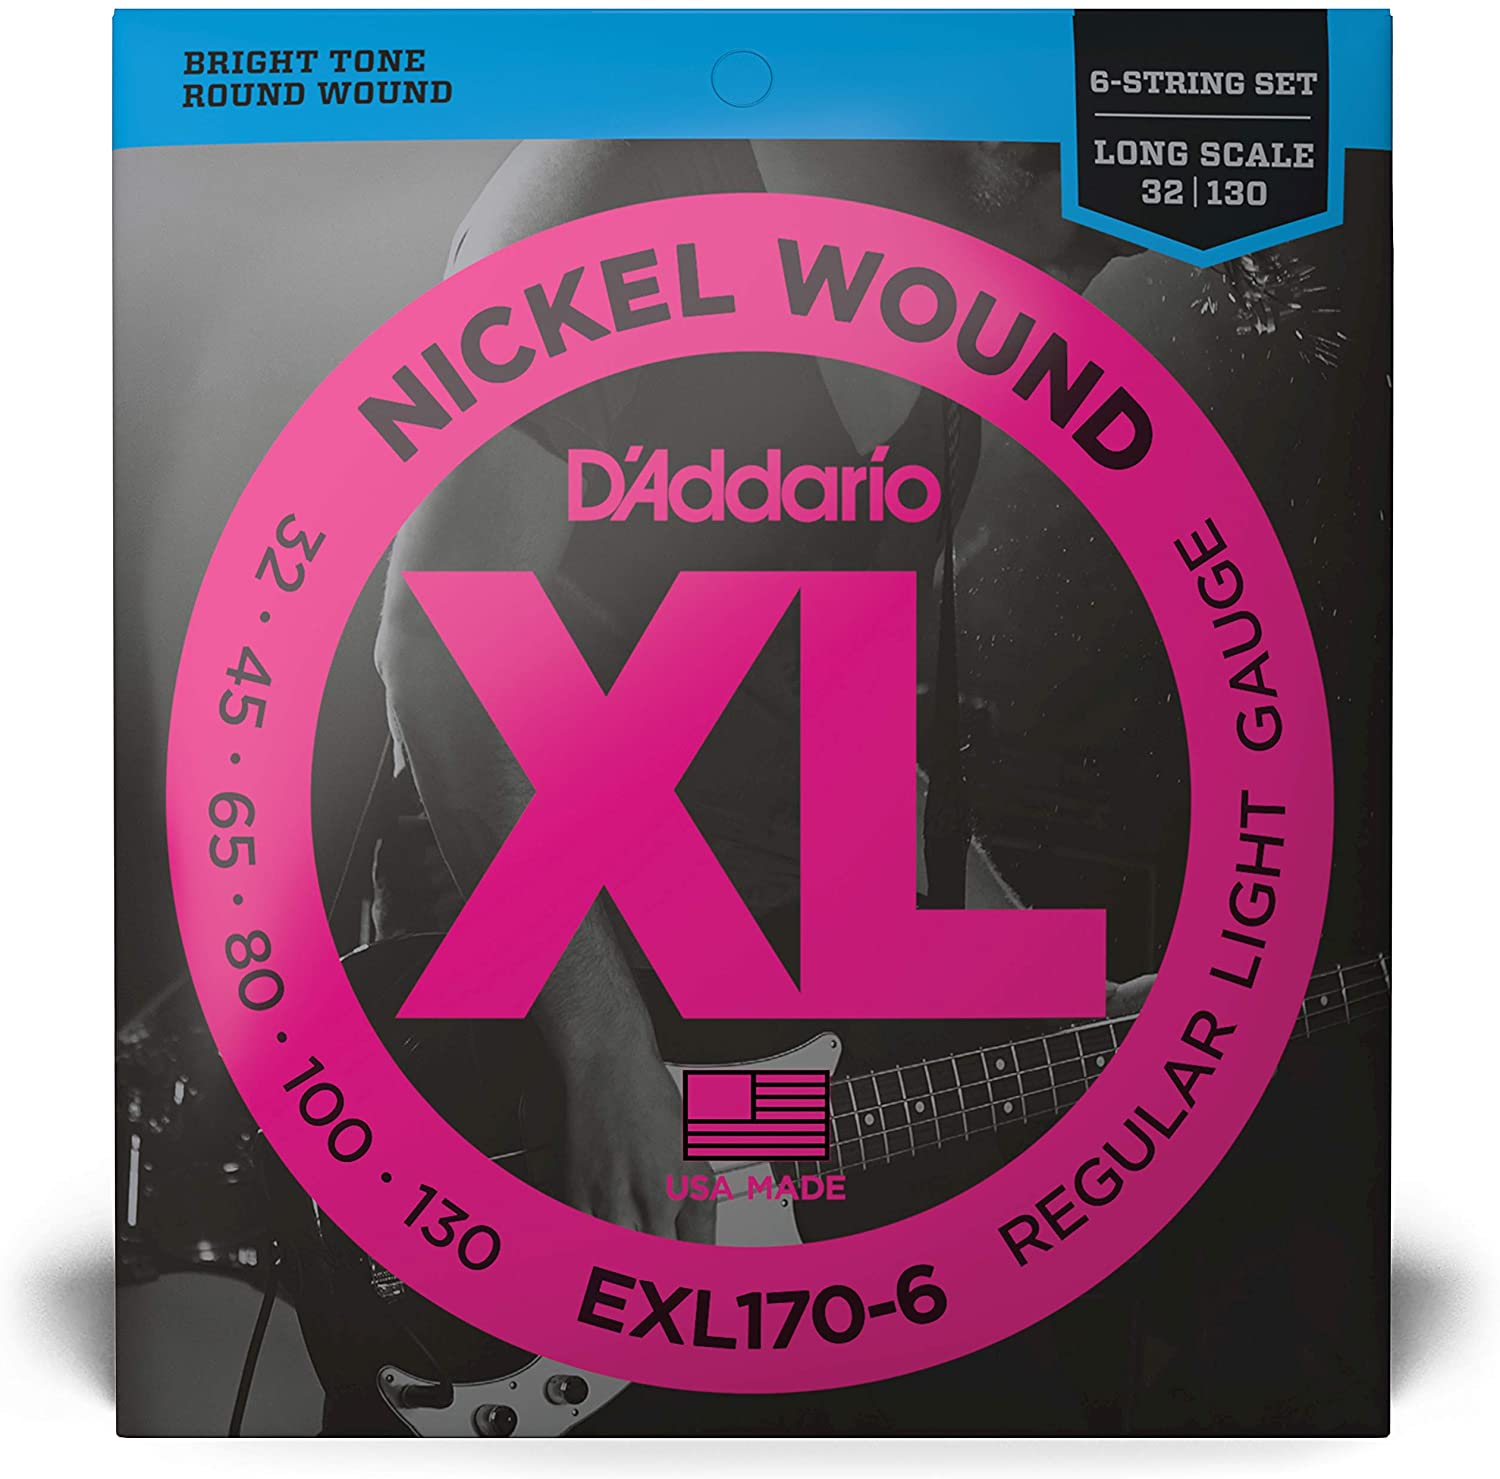 buy daddario 6 string bass strings online in india